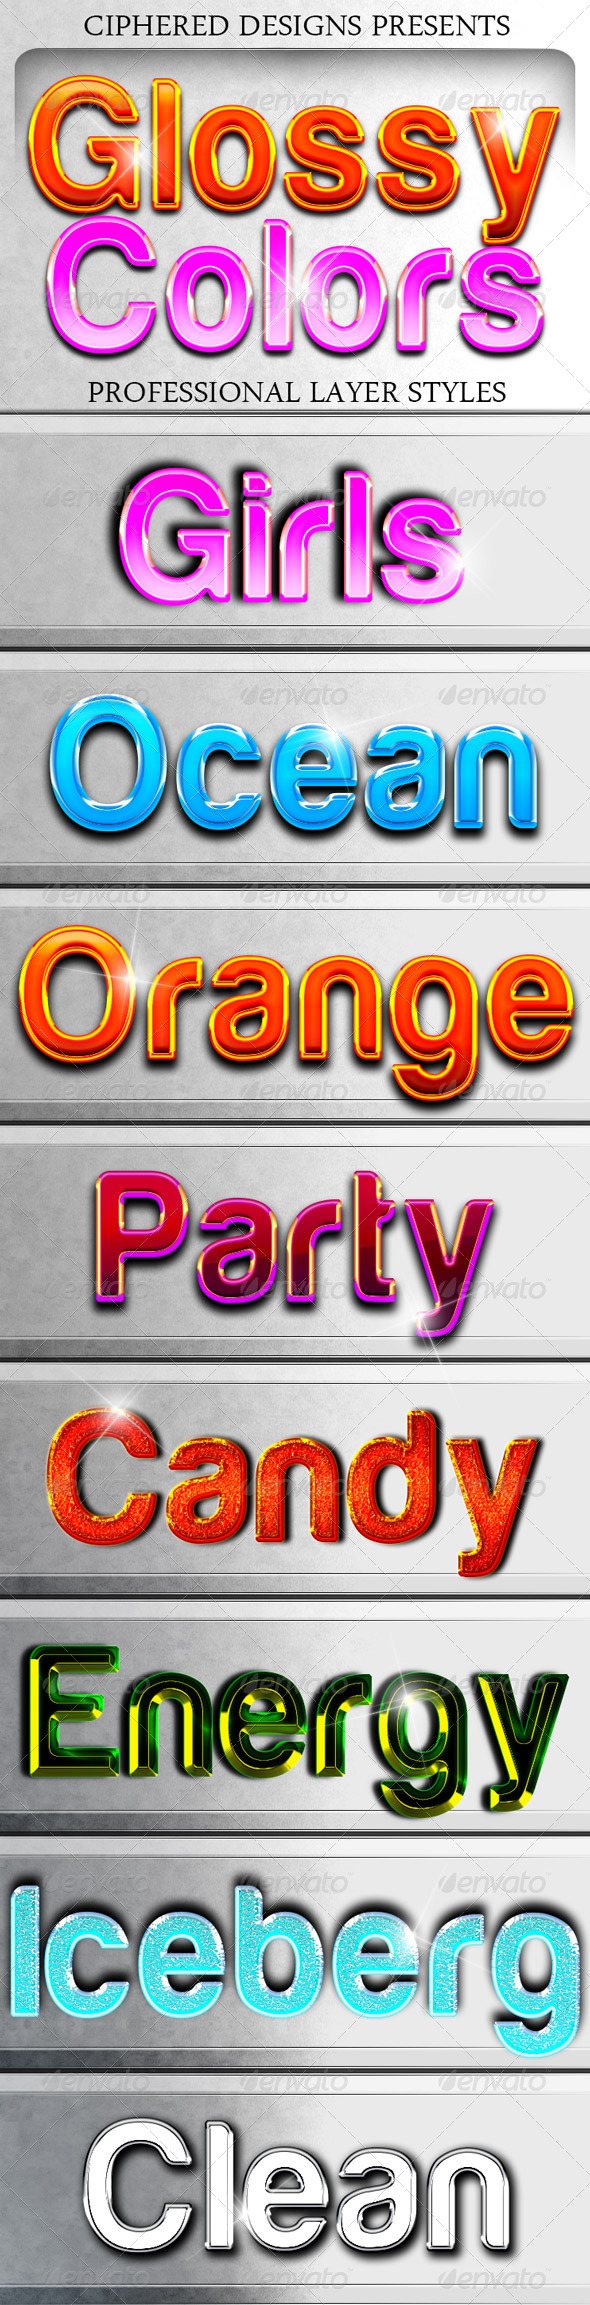 GraphicRiver Glossy Colors Professional Layer Styles 4769668